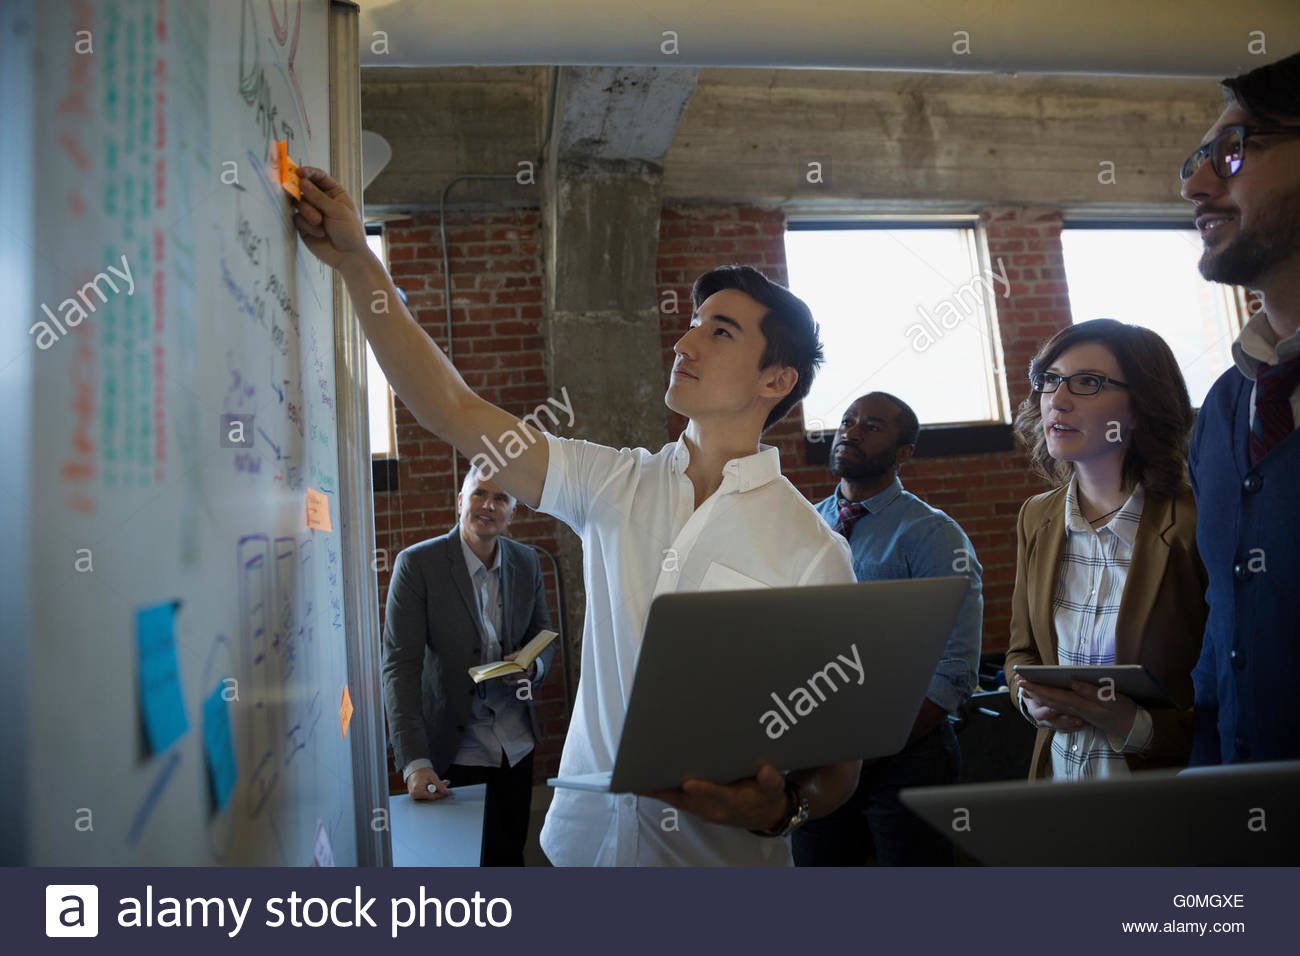 Entrepreneurs brainstorming at whiteboard - Stock Image